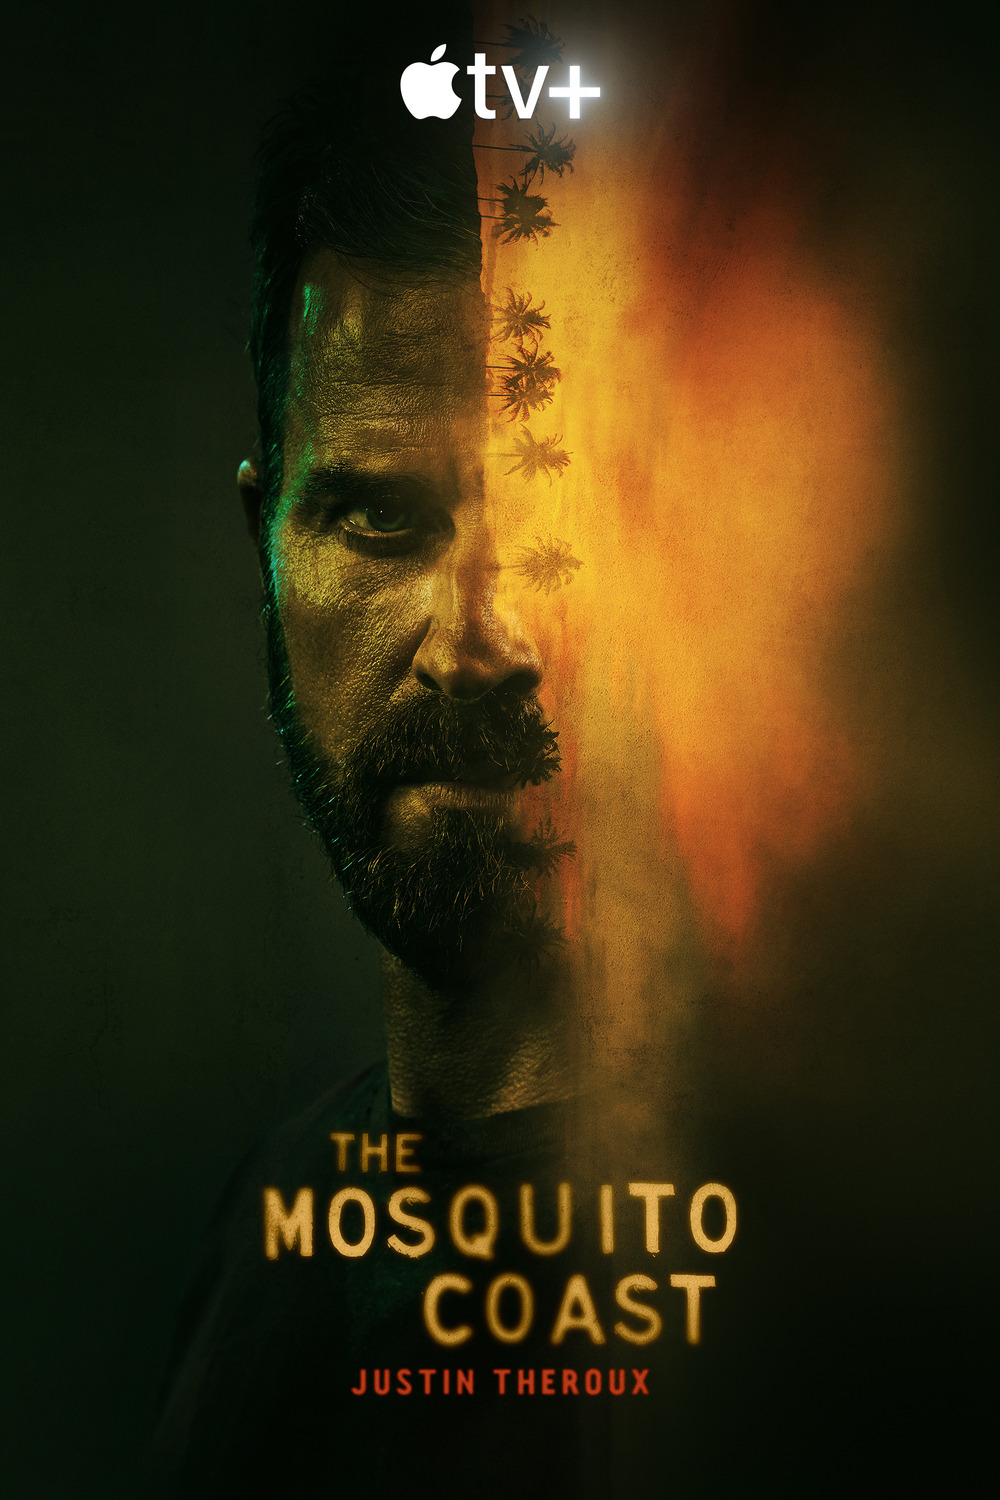 Trailer for the Series Mosquito Shore with Justin Theroux and Melissa George